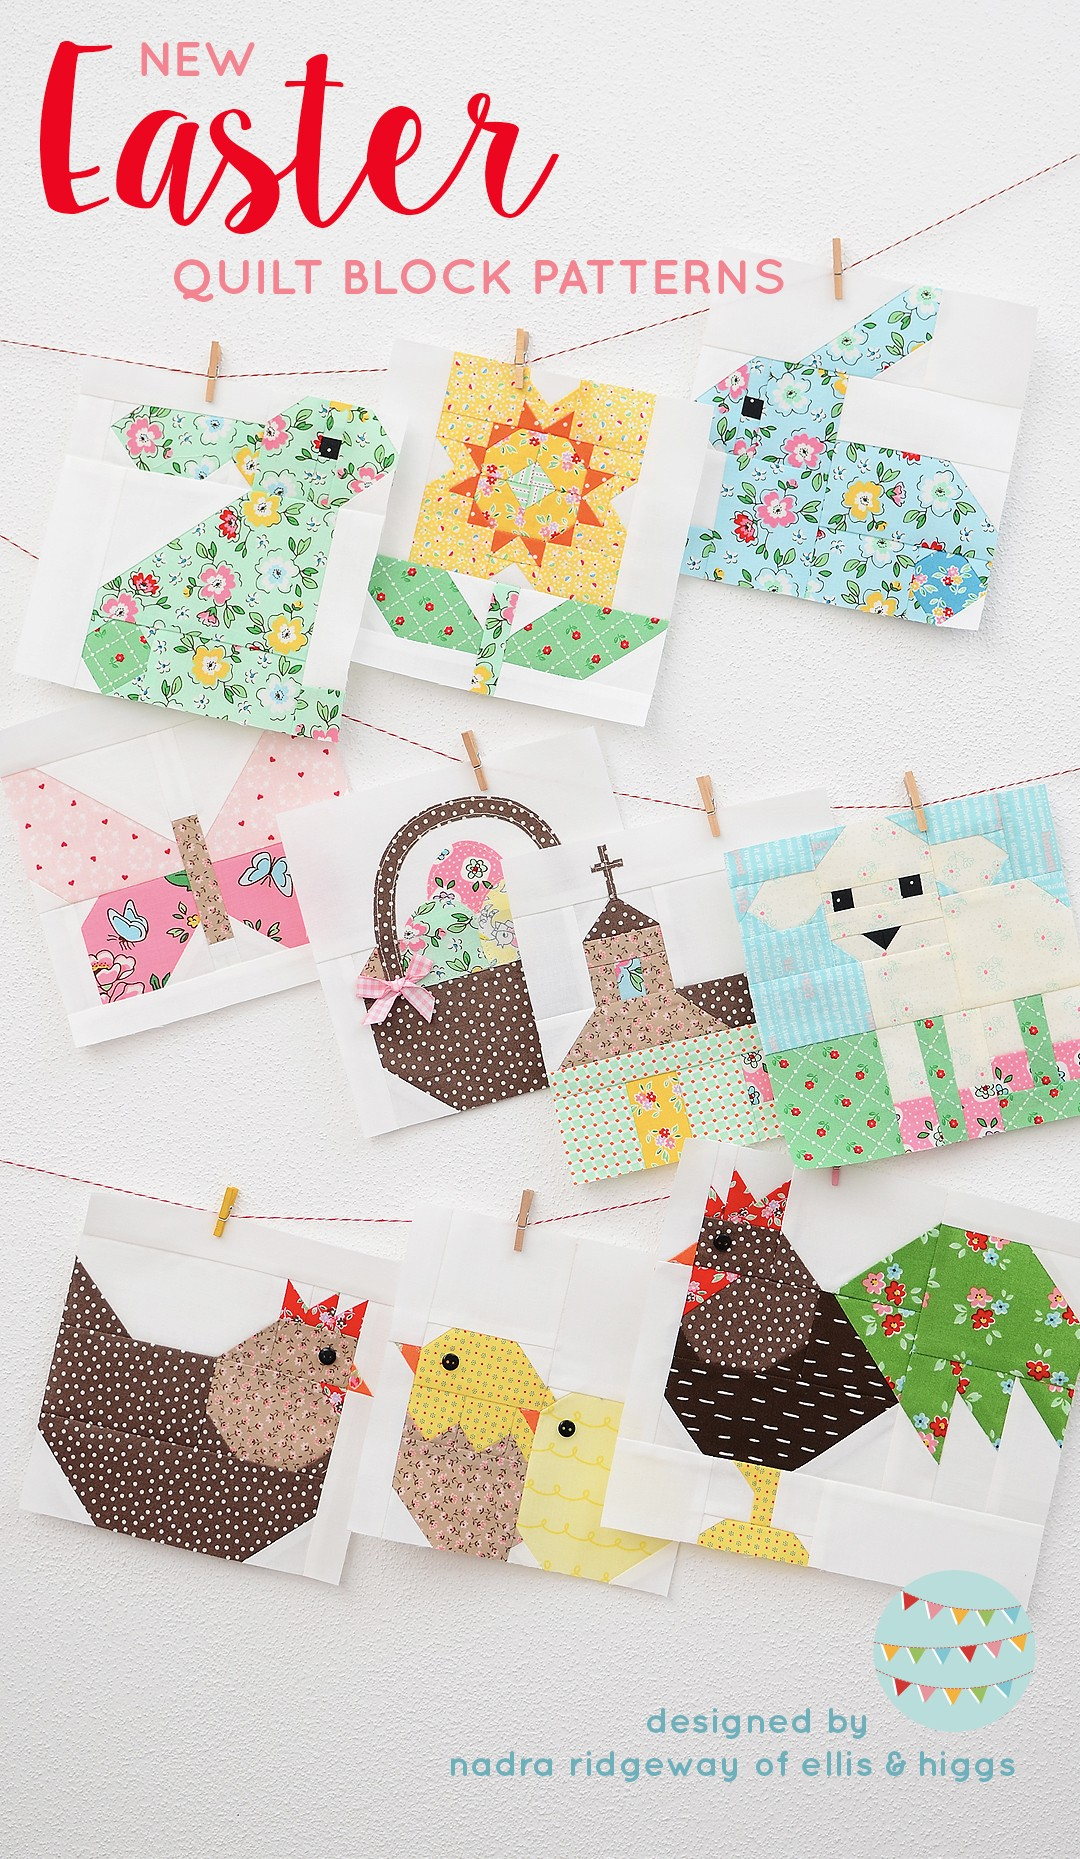 New Easter Quilt Block Patterns by Nadra Ridgeway of ellis and higgs